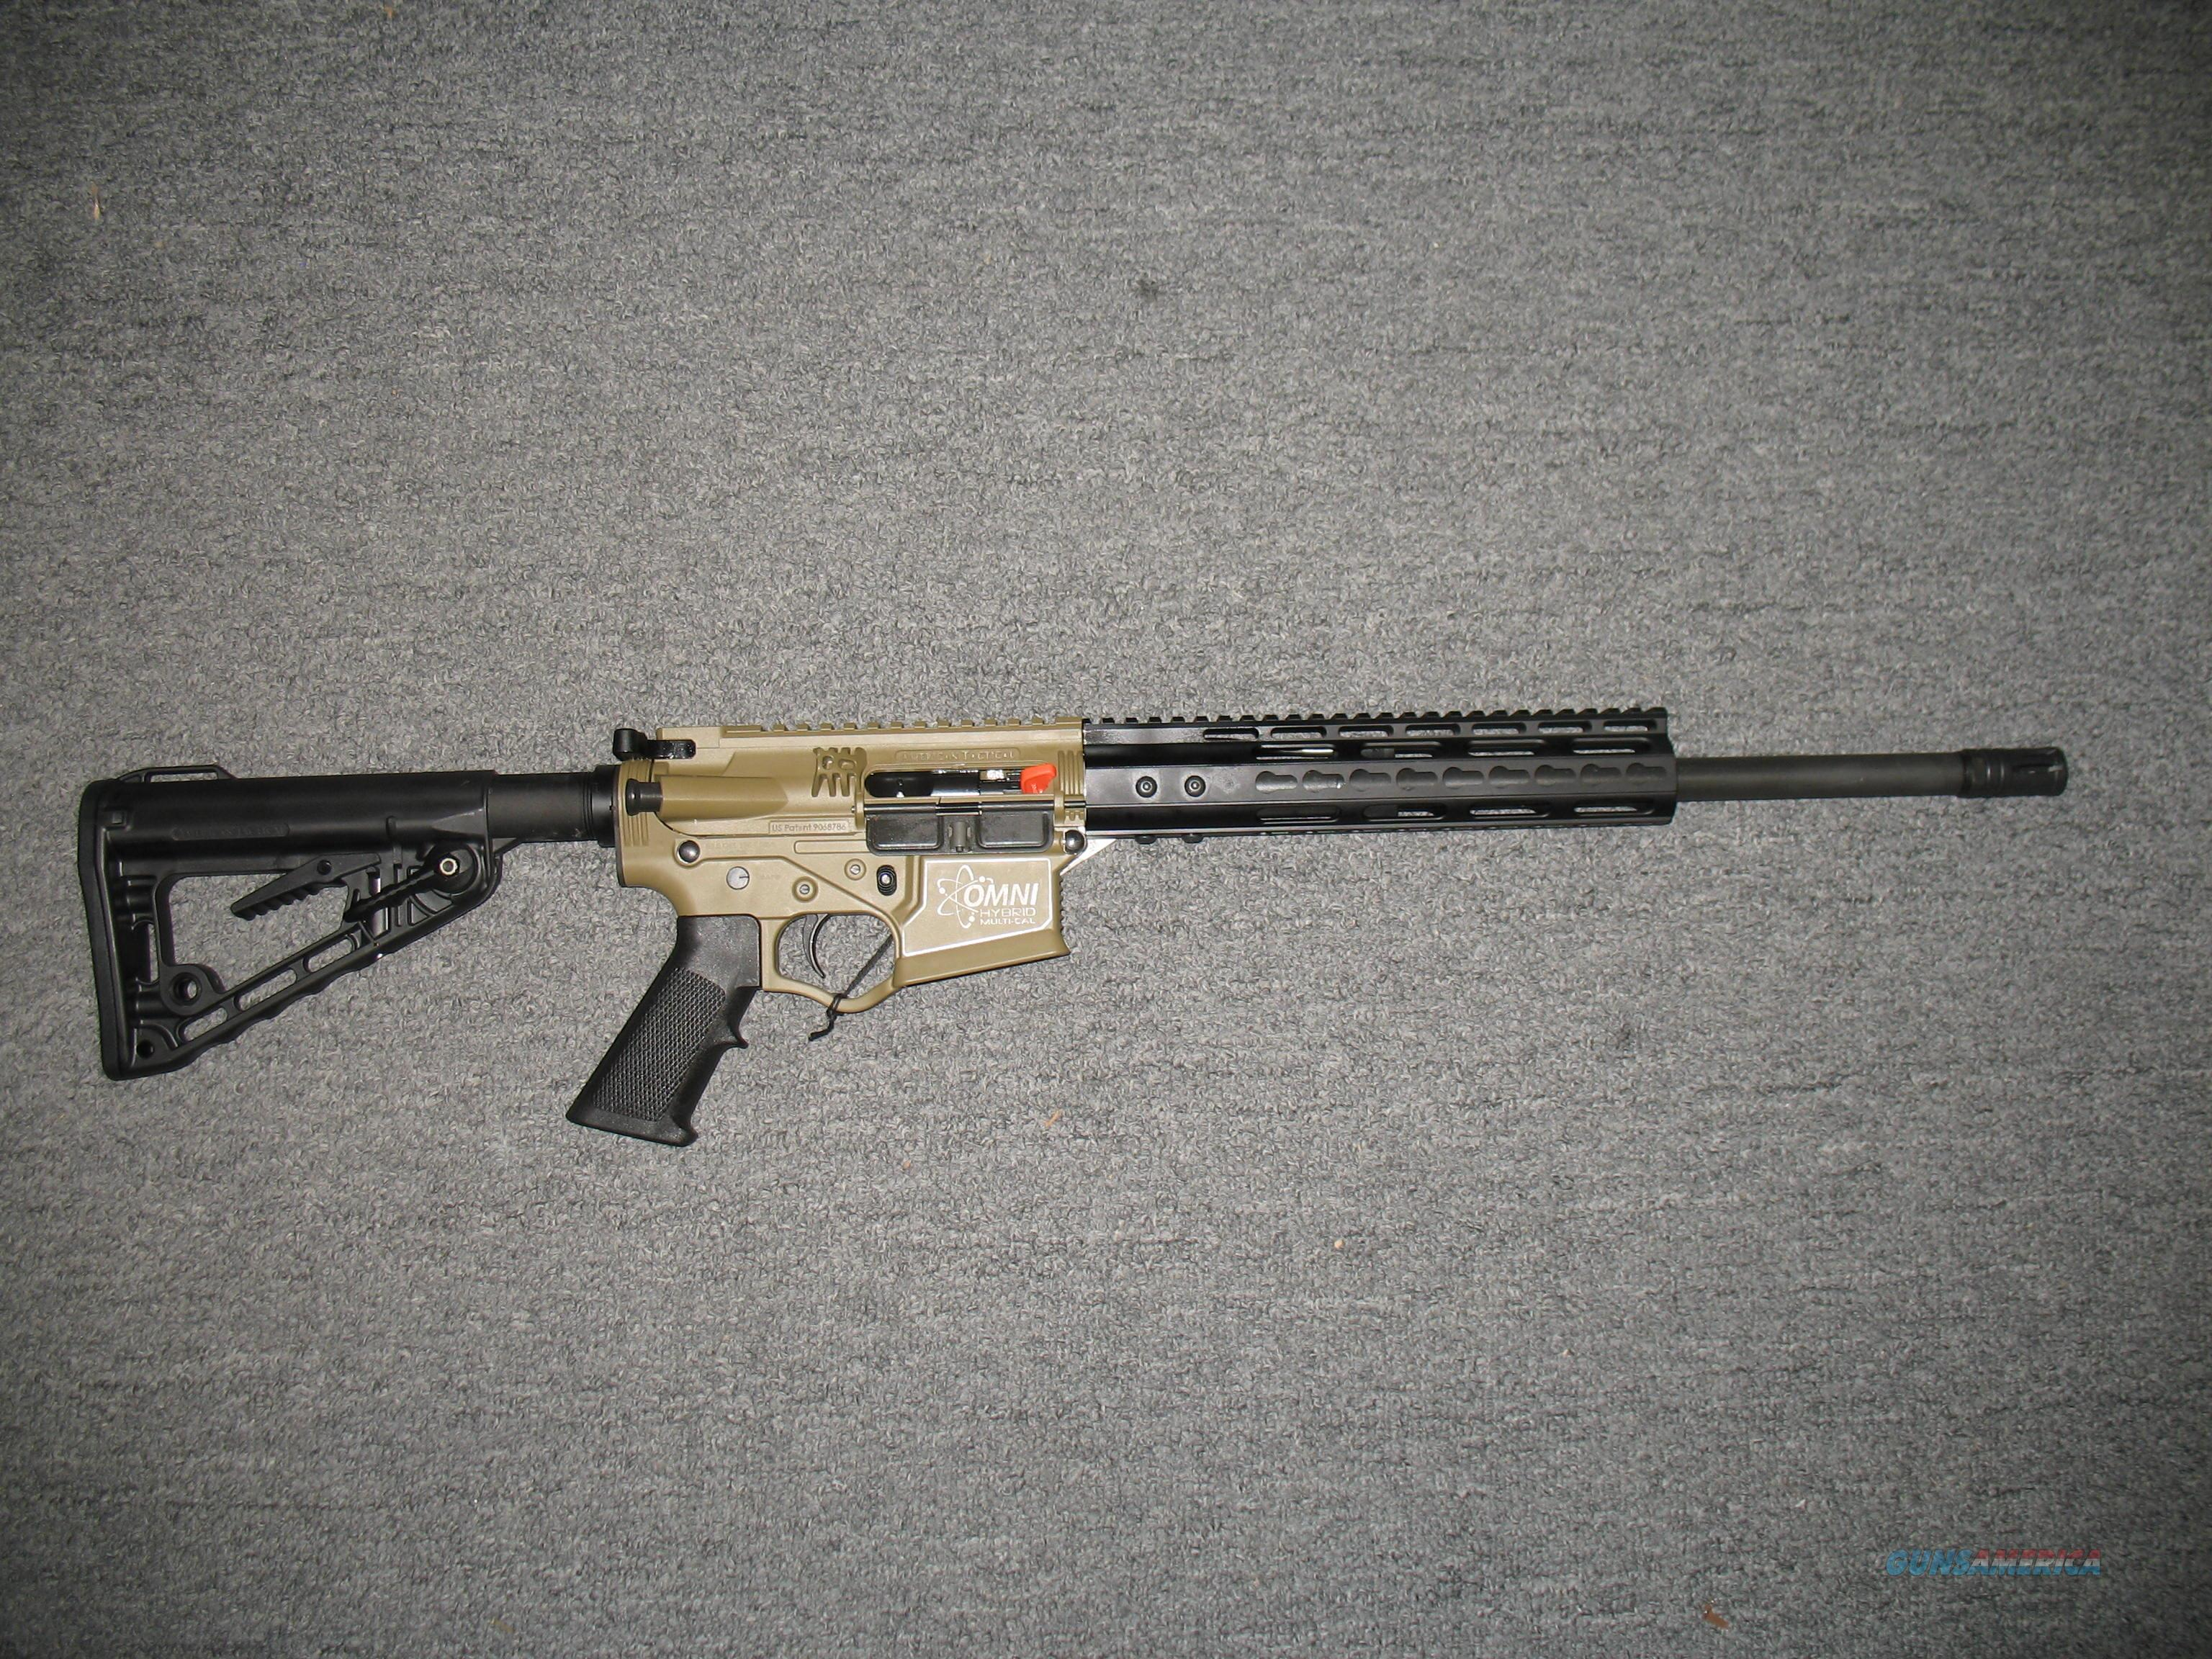 American Tactical Omni Hybrid w/adjustable stock keymod forearm FDE & Black  Guns > Rifles > AR-15 Rifles - Small Manufacturers > Complete Rifle